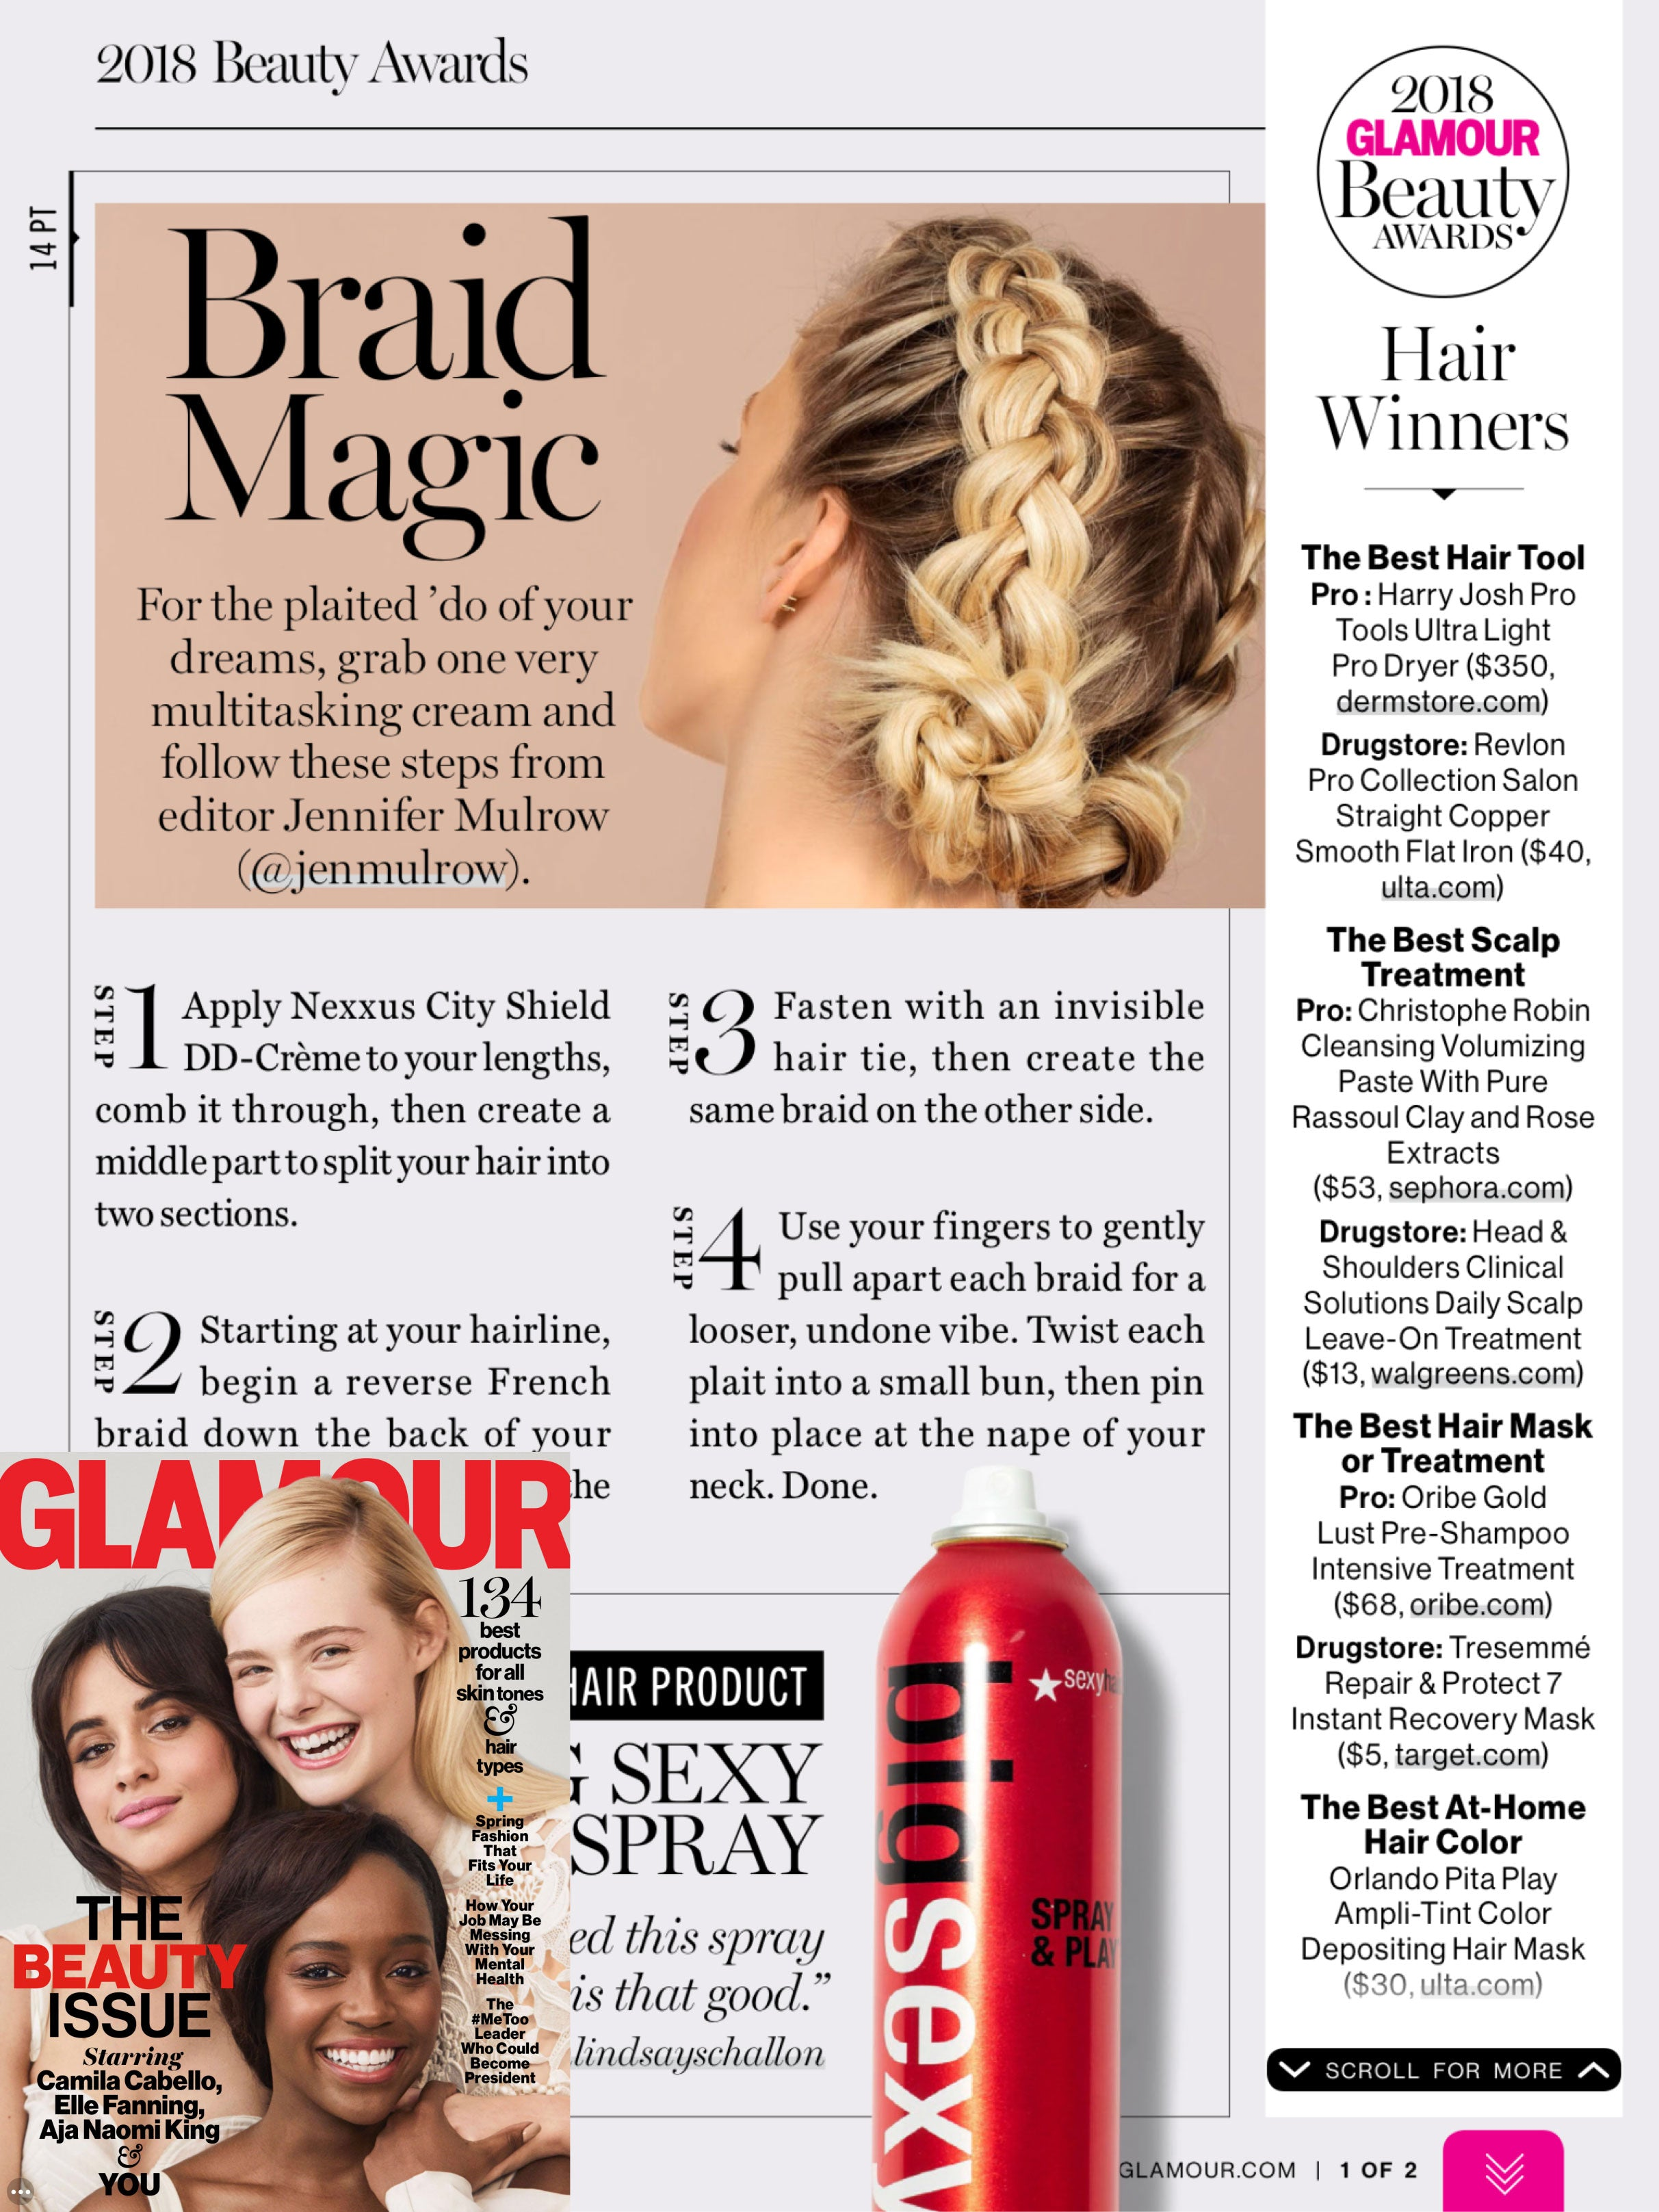 The Best At-Home Hair Color - 2018 Glamour Beauty Awards – Orlando ...